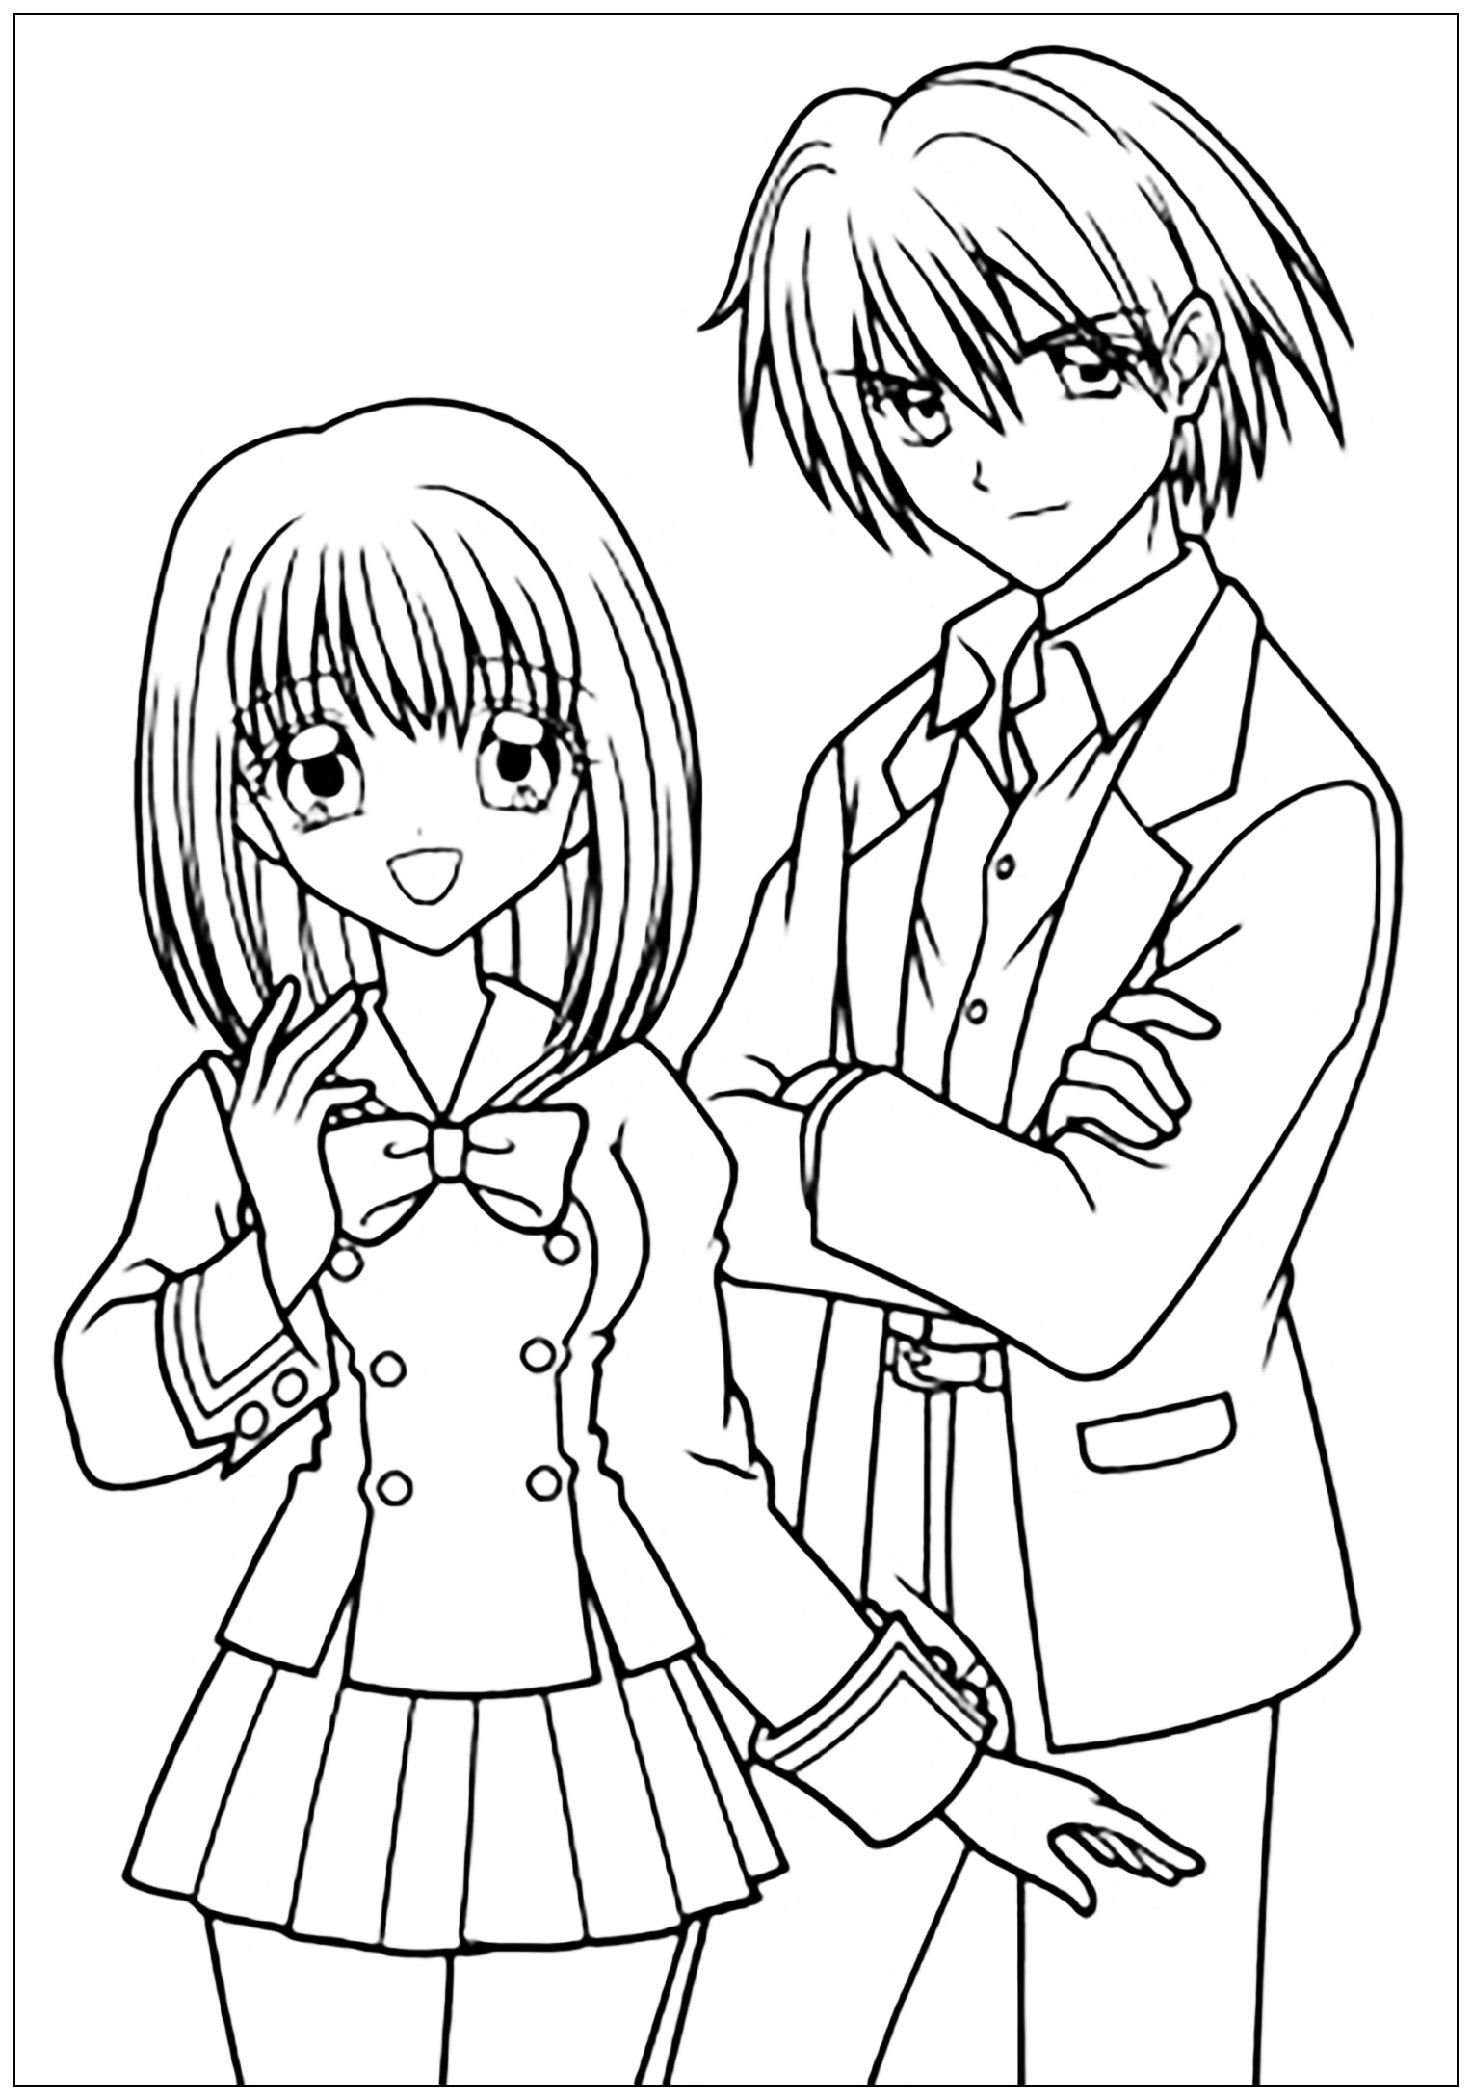 School Anime Couple Coloring Pages K5 Worksheets Boy And Girl Drawing Cartoon Coloring Pages Coloring Pages For Boys